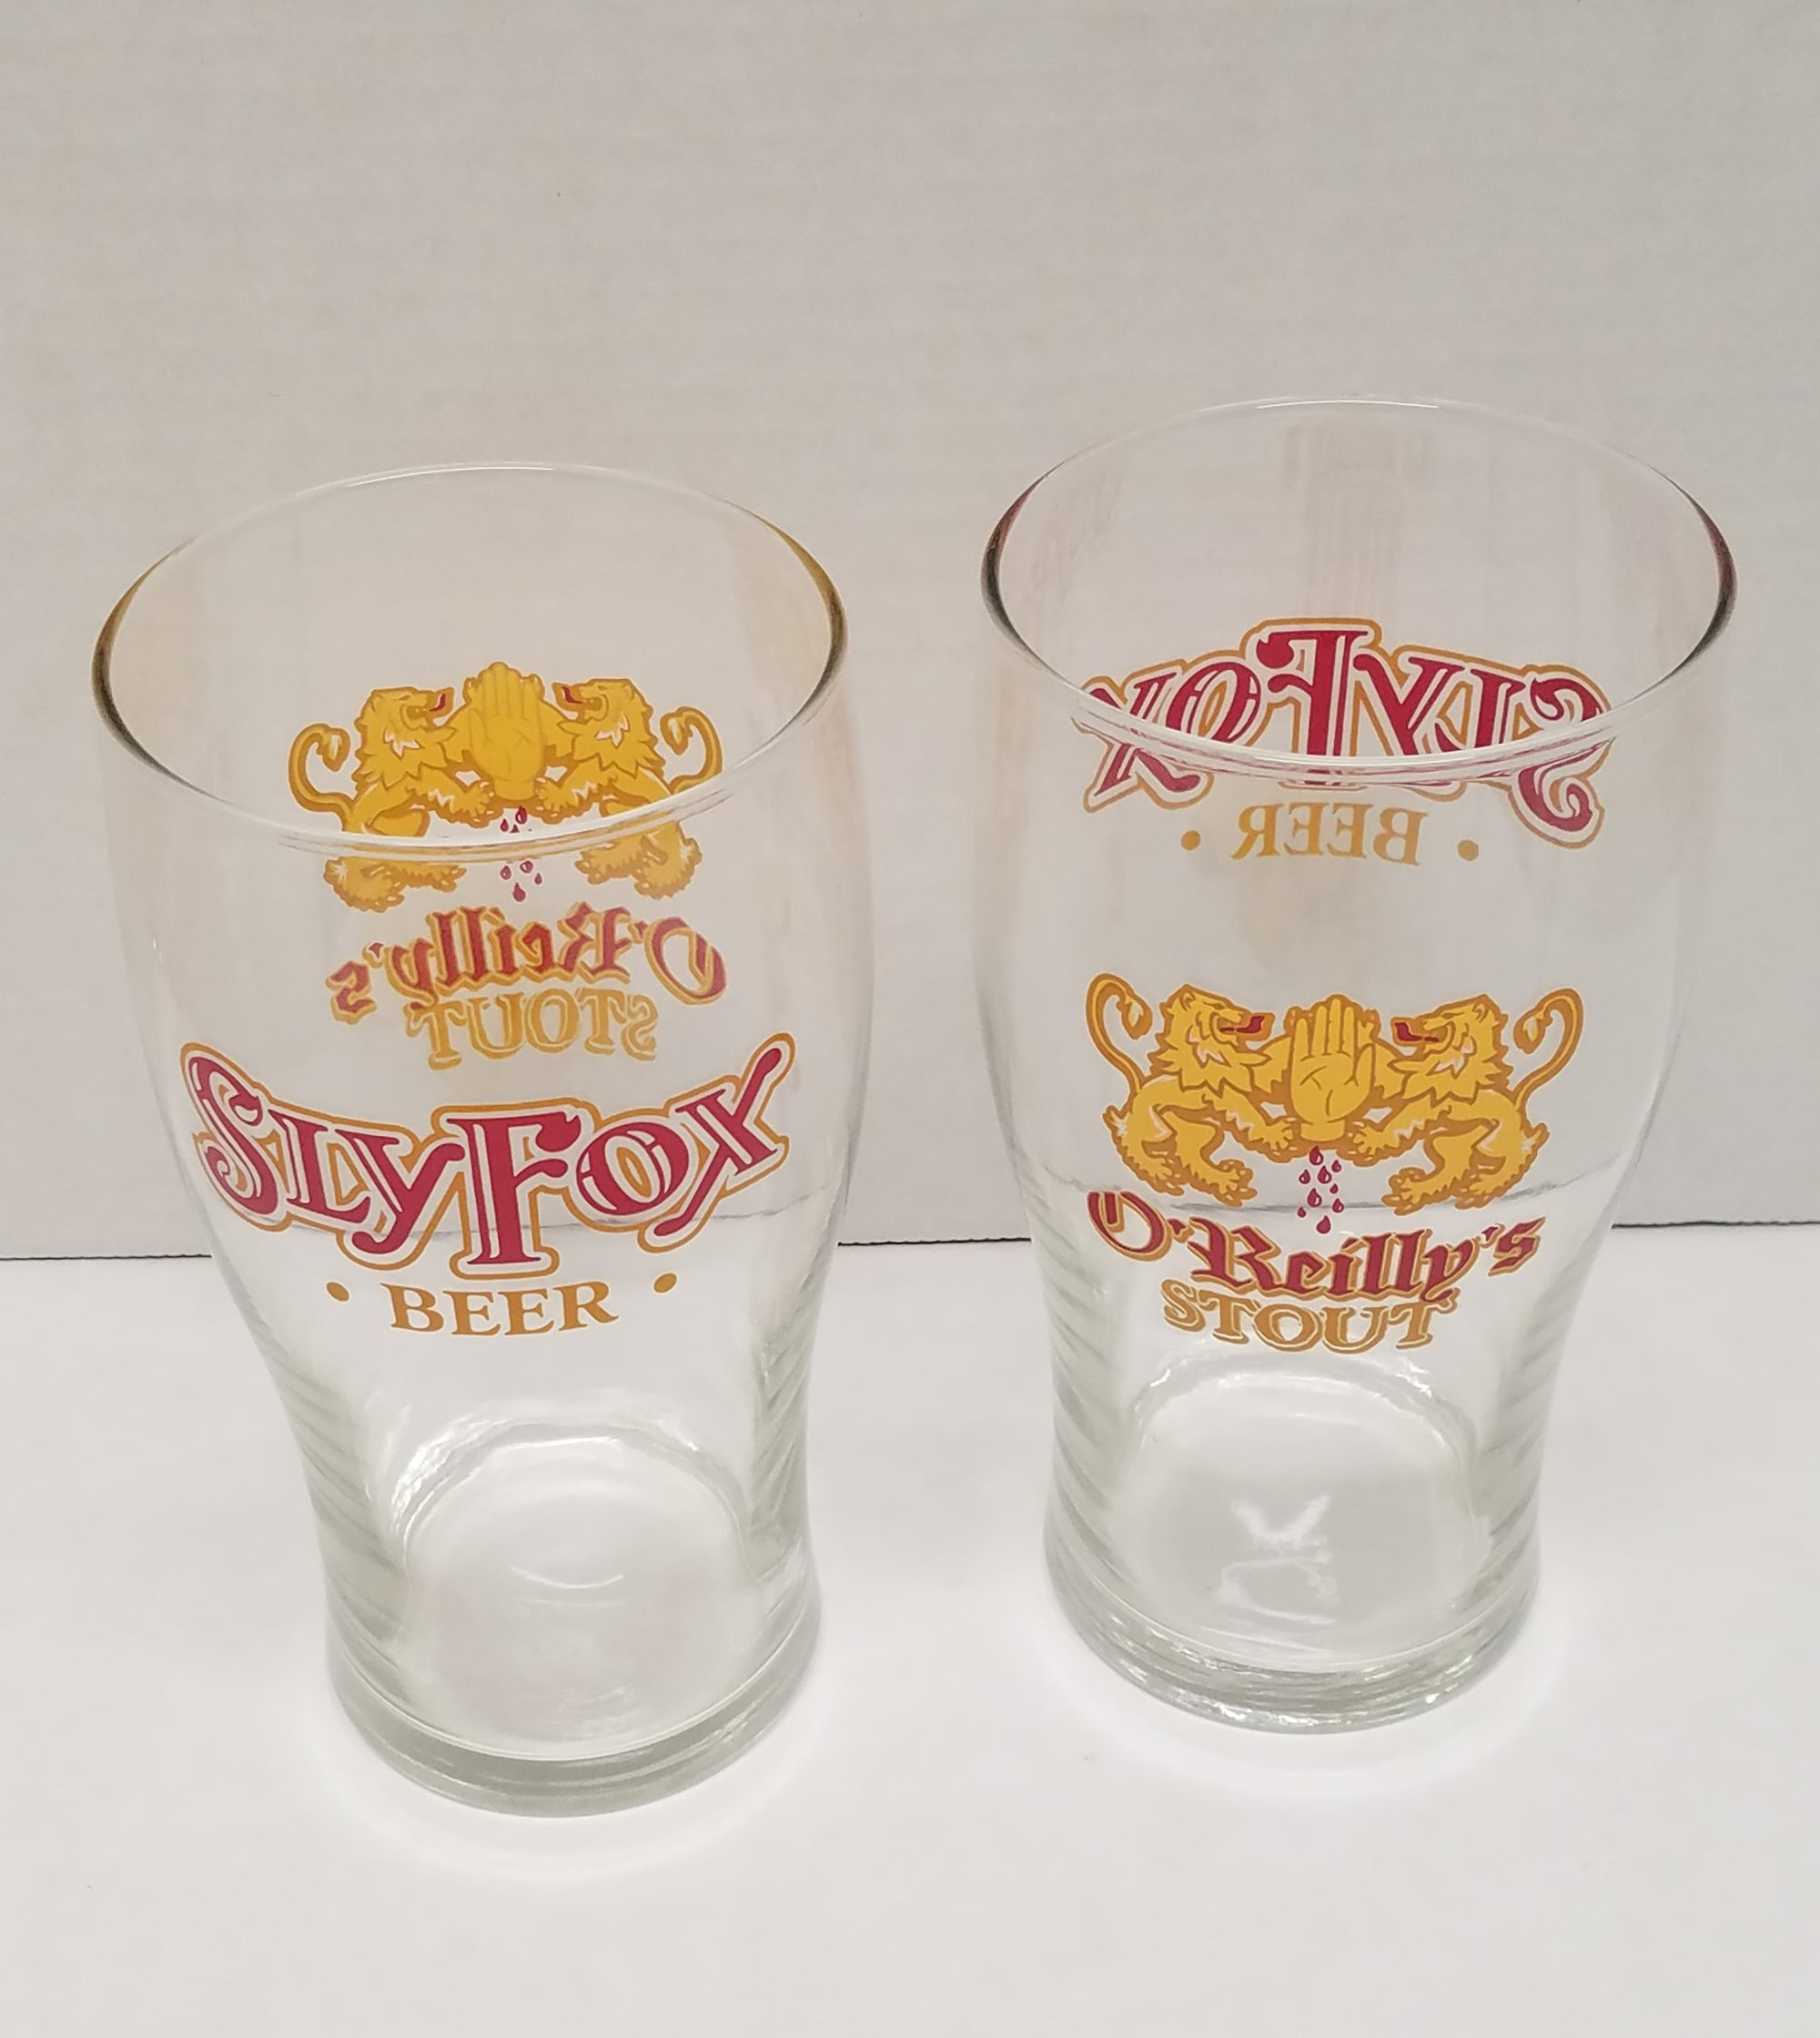 Sly Fox O'Rreilly's Stout Beer Pint Glasses Set of 2